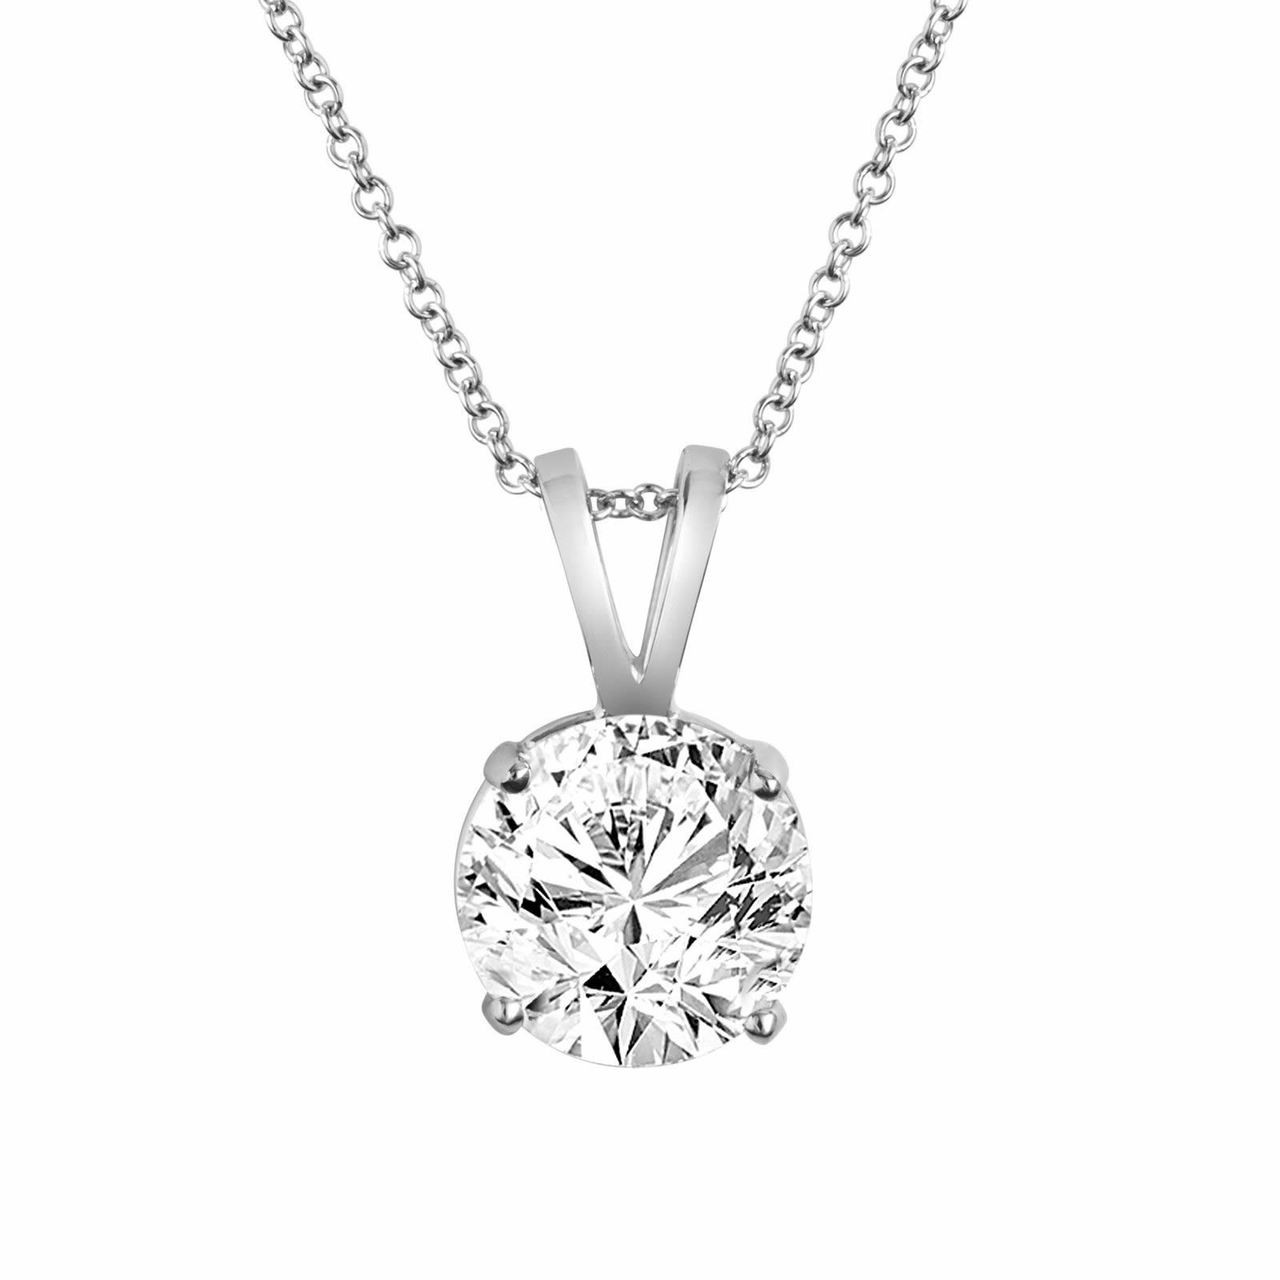 model jewelry pendant co pendants solitare necklace platinum tiffany sv shot solitaire necklaces in diamond